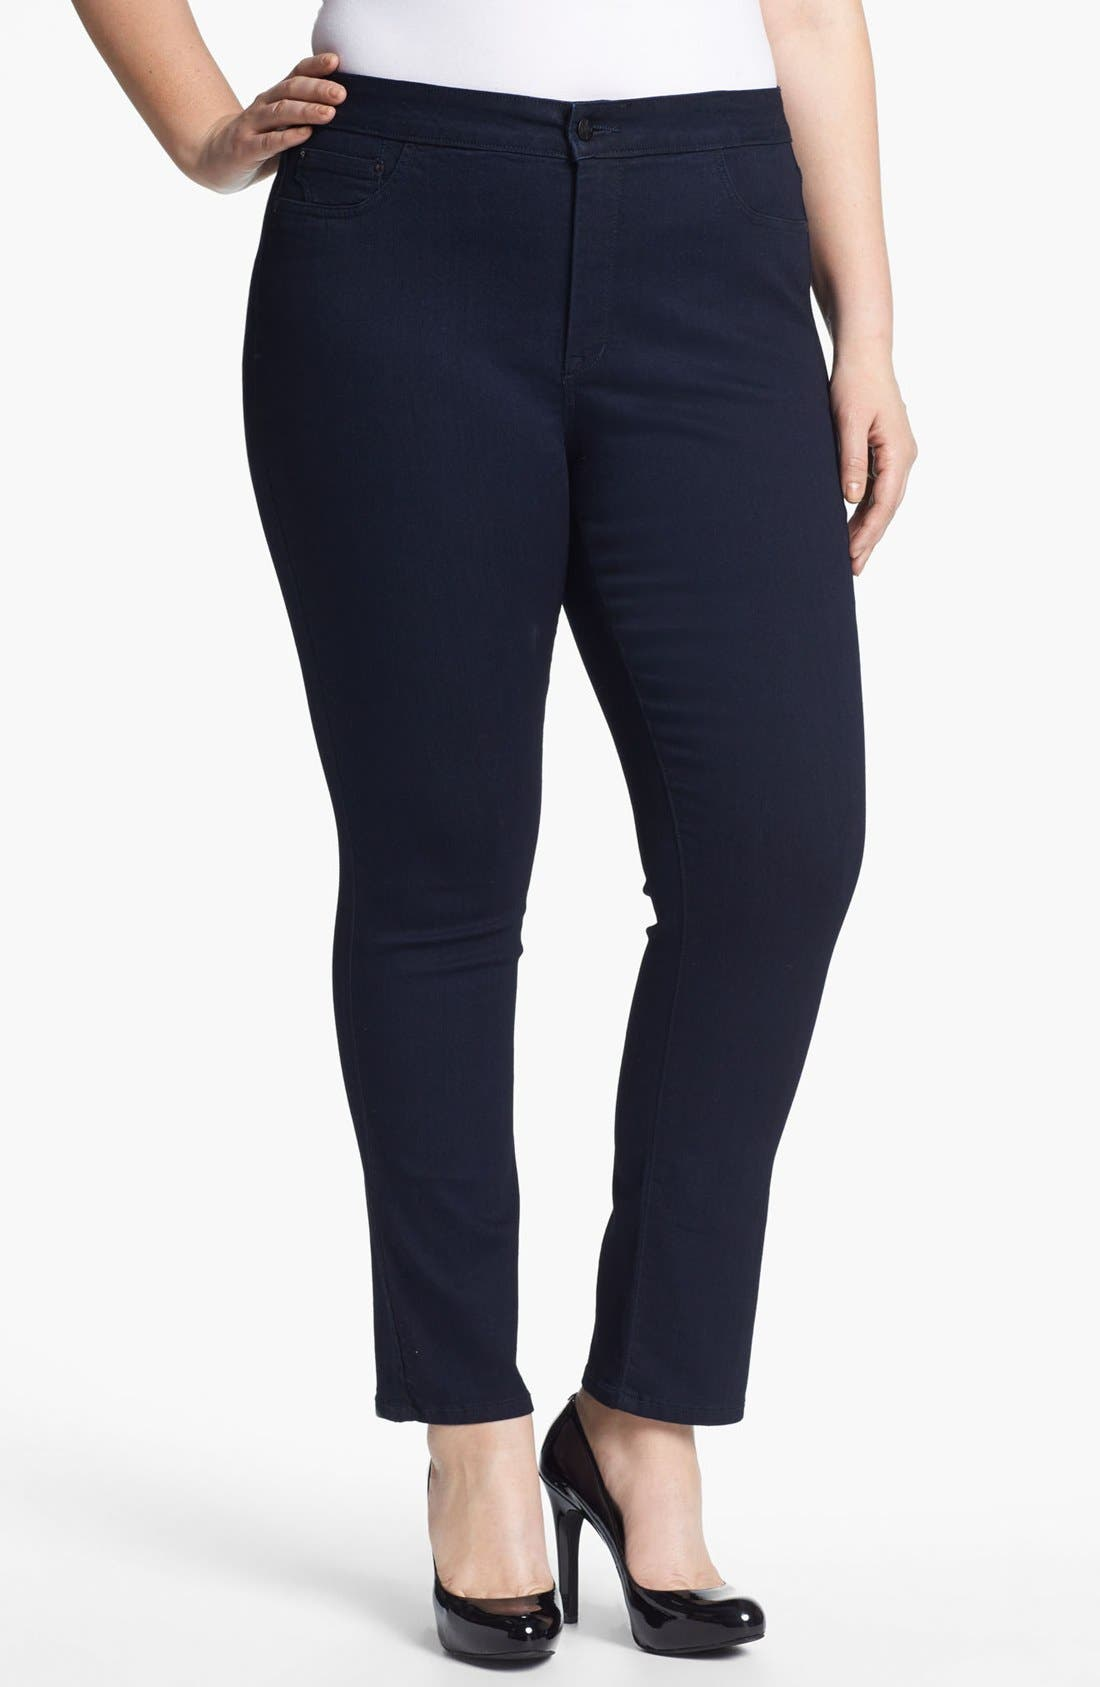 Alternate Image 1 Selected - NYDJ 'Jaclyn' Stretch Skinny Jeans (Resin) (Plus Size)